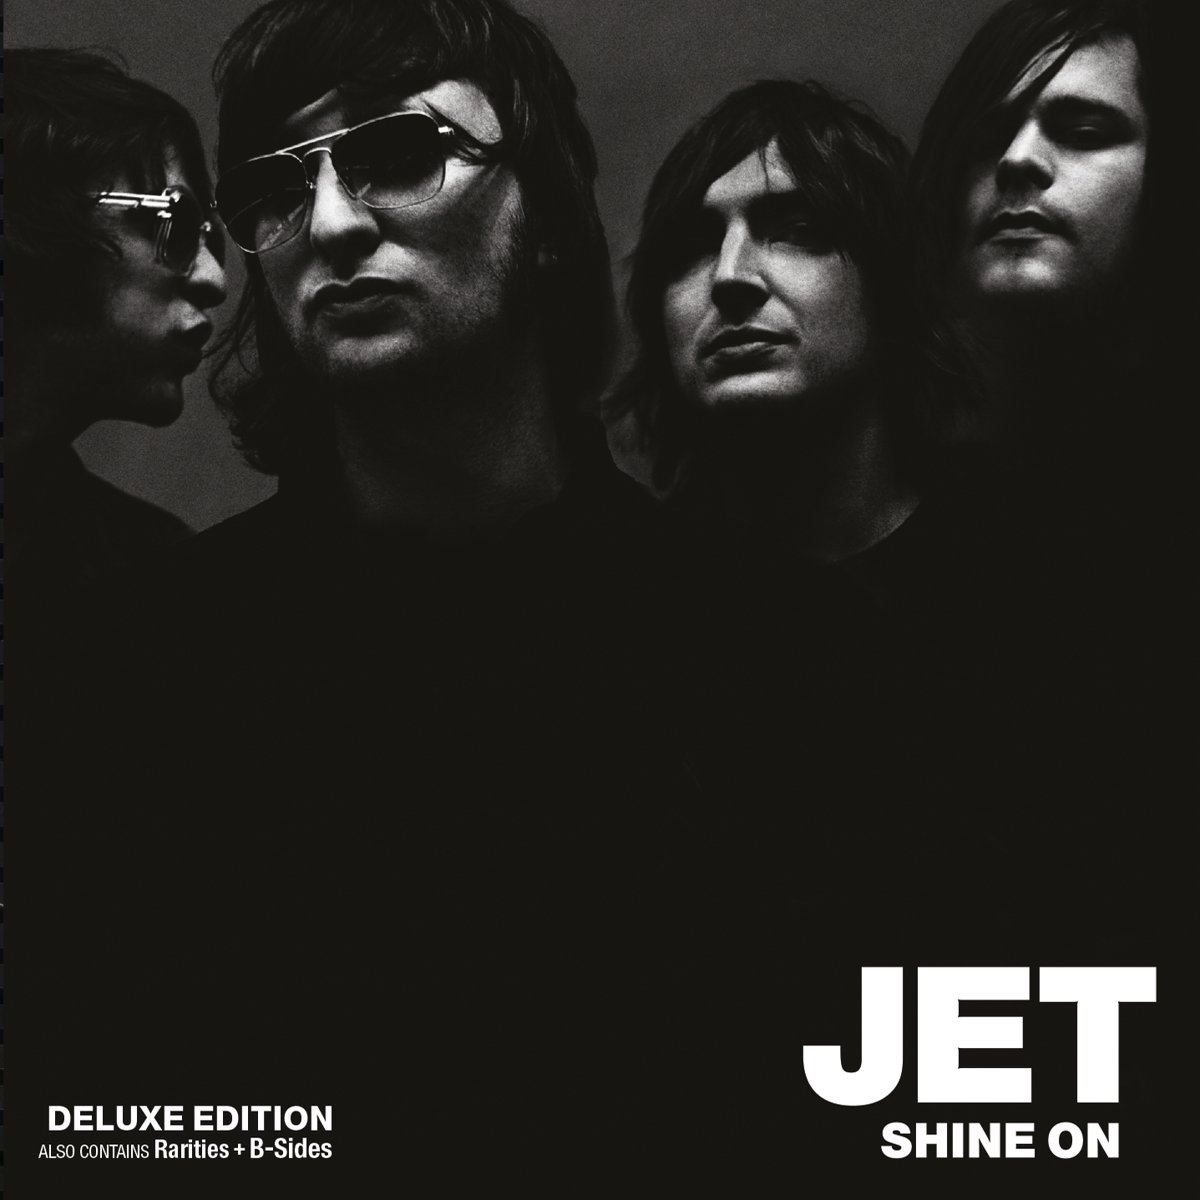 CD : Jet - Shine On (Deluxe Edition, United Kingdom - Import)